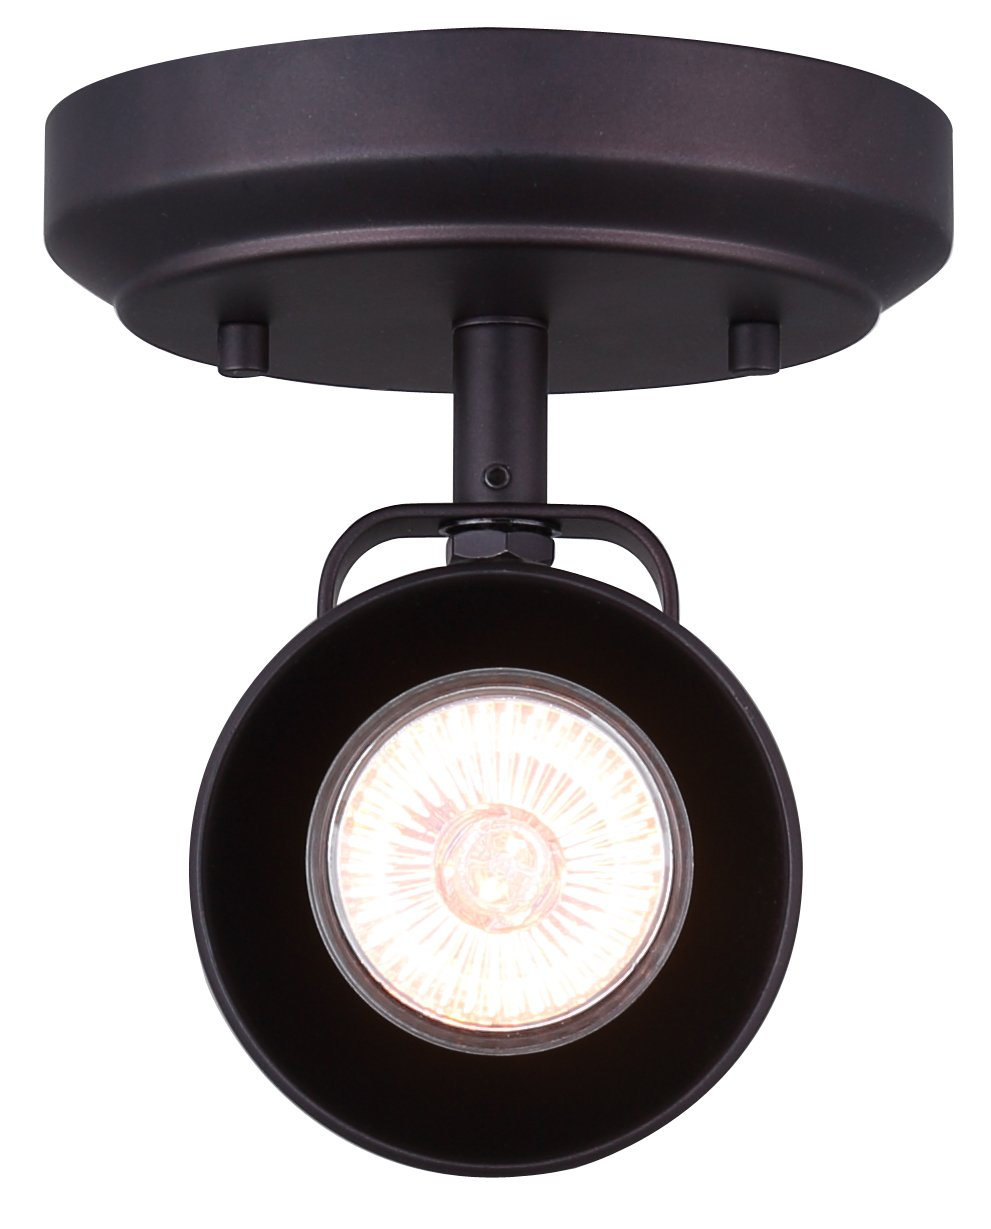 CANARM ICW622A01ORB10 LTD Polo 1 Light Ceiling/Wall, Oil Rubbed Bronze with Adjustable Head